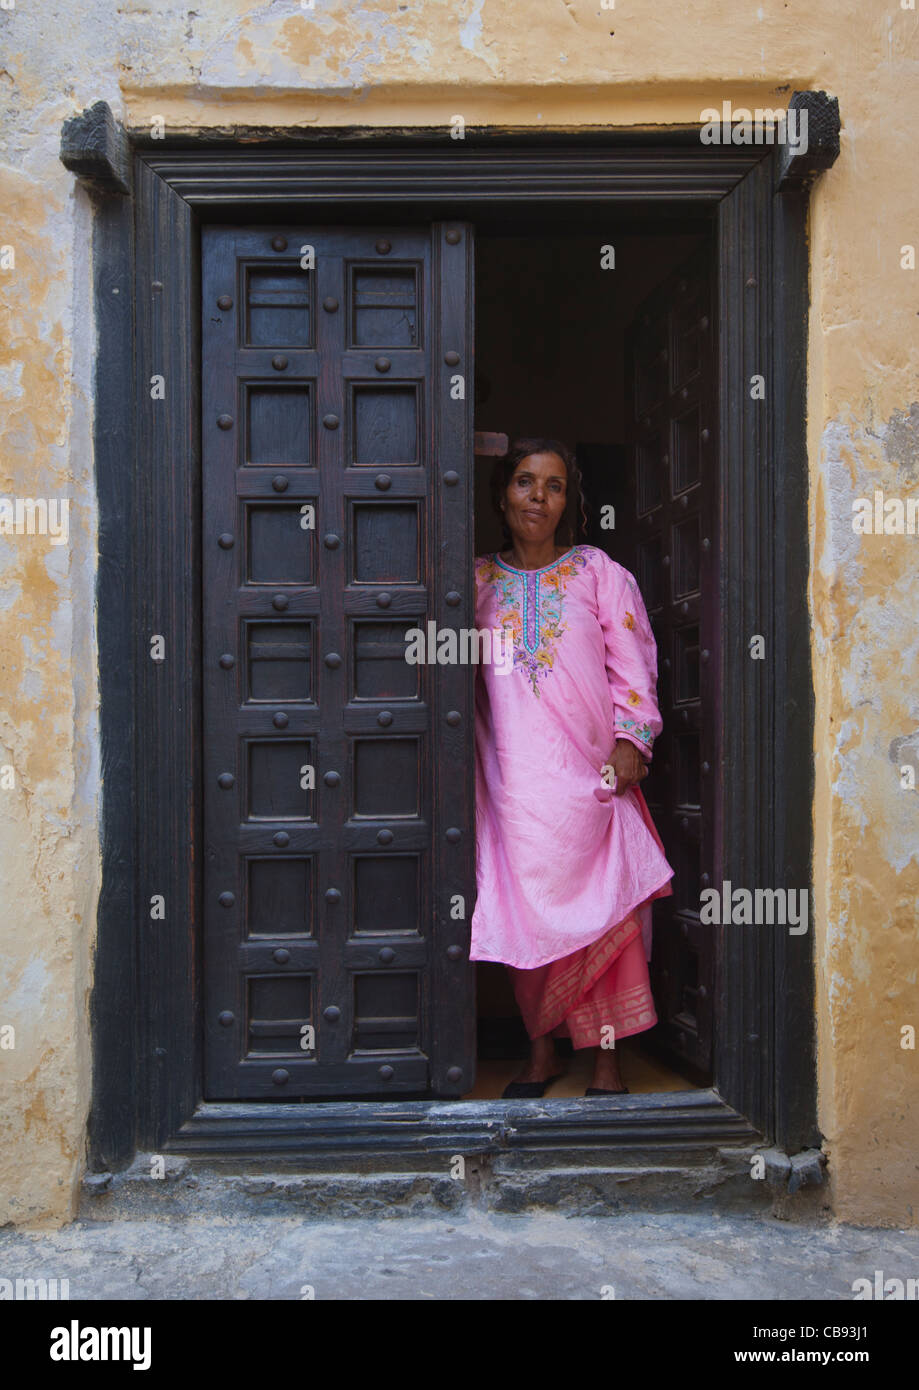 Woman Standing In The Frame Of Omani Wooden Carved Door, Lamu, Kenya Stock Photo